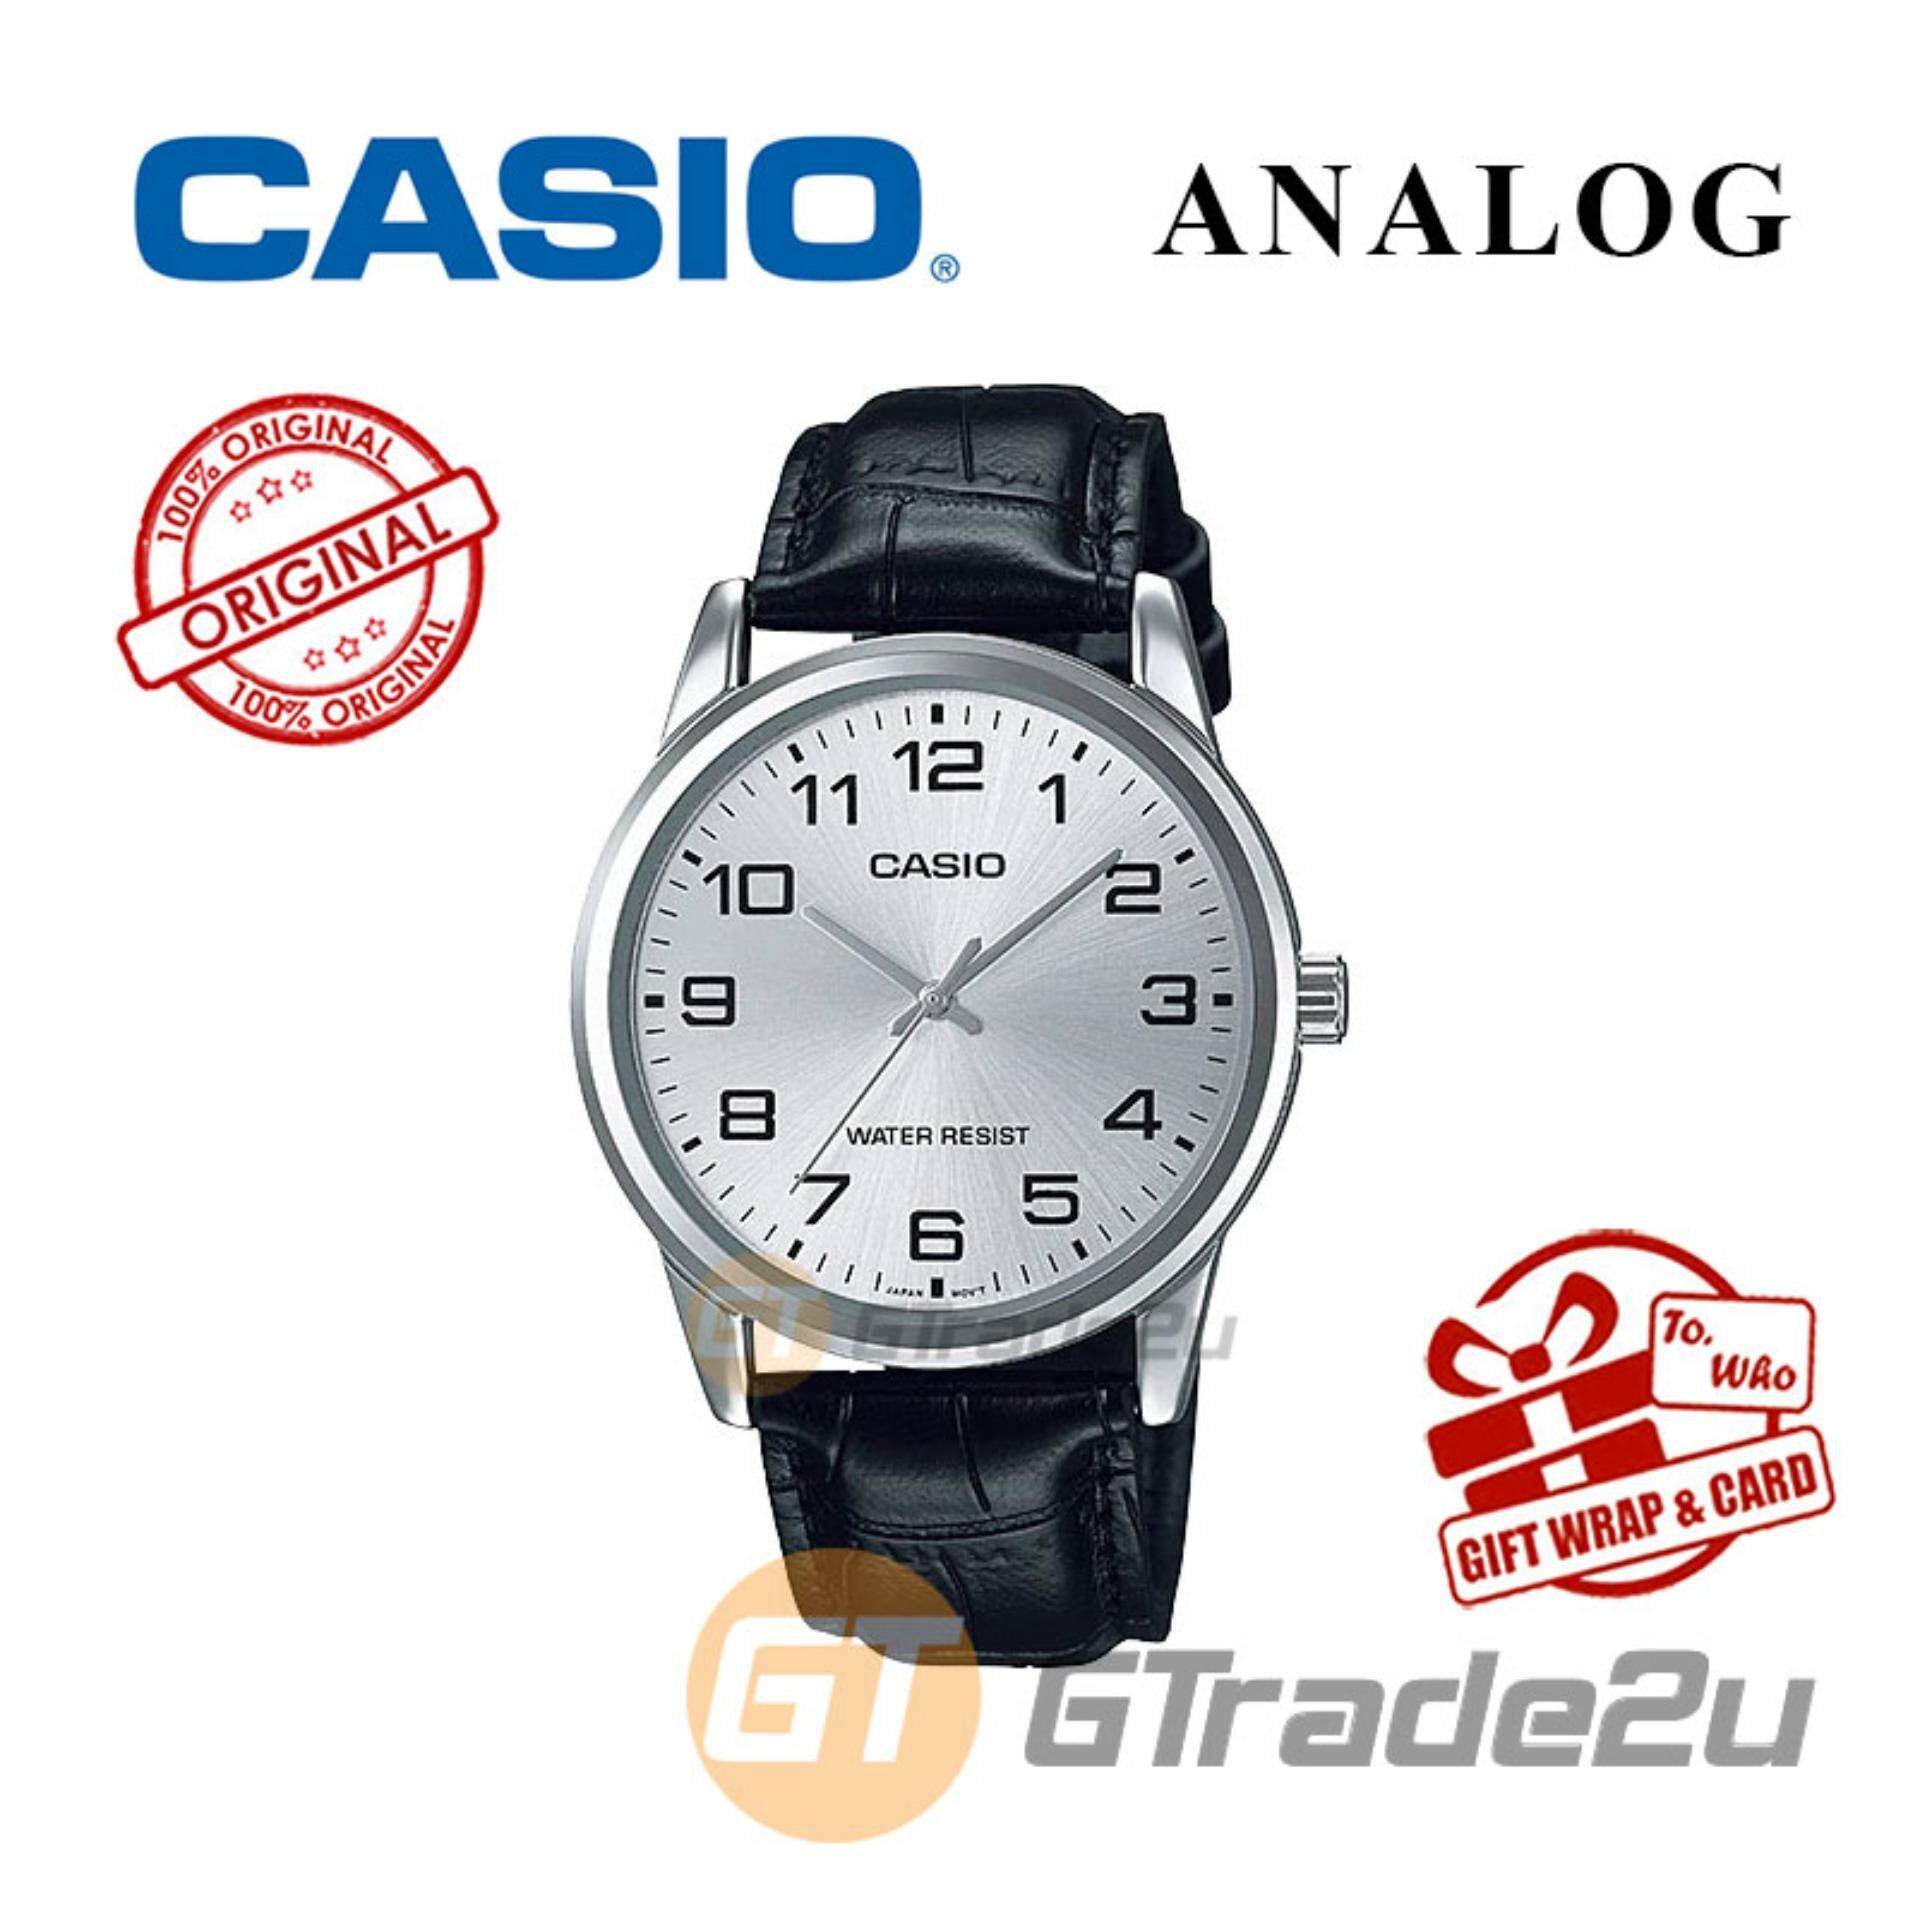 Casio Watches With Best Price At Lazada Malaysia G Shock Aw 590 1a Original Jam Tangan Pria Strap Rubber Hitam Men Mtp V001l 7b Analog Watch Simple Easy Design